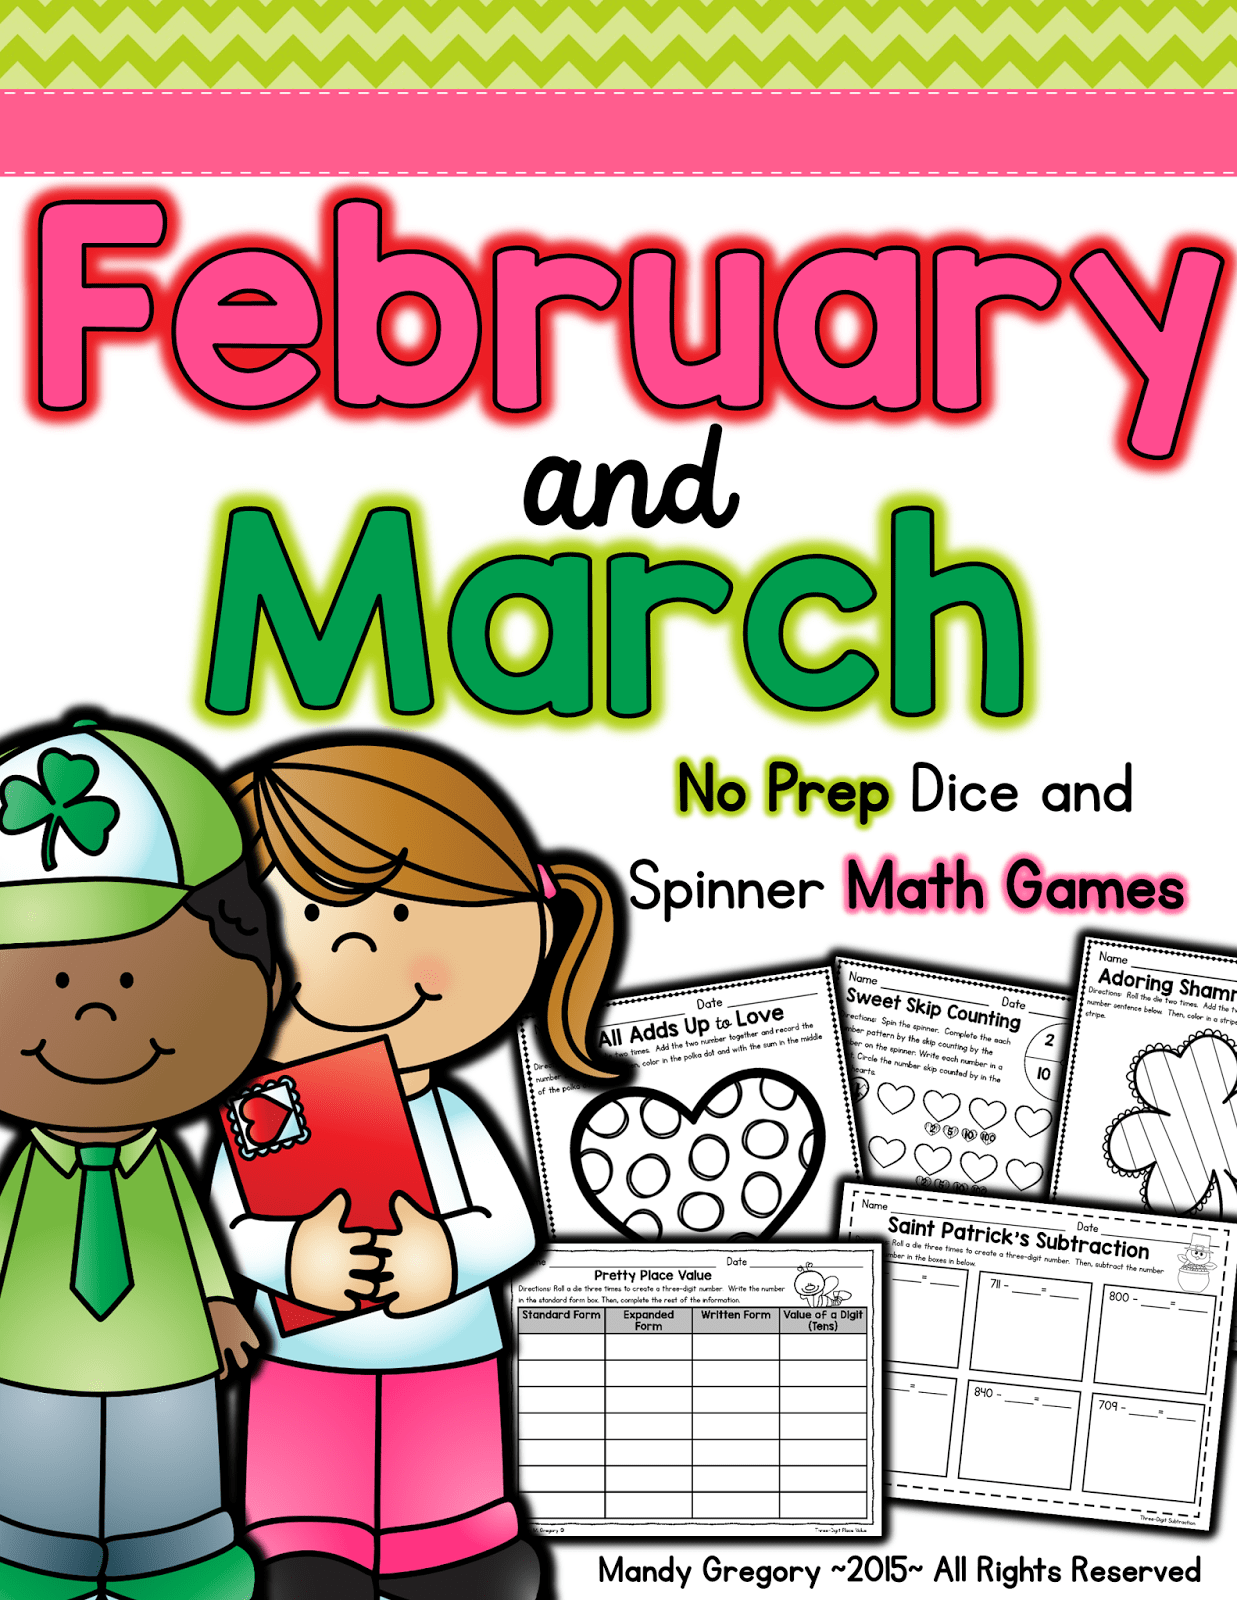 https://www.teacherspayteachers.com/Product/Easy-Prep-Math-Games-February-and-March-1697710